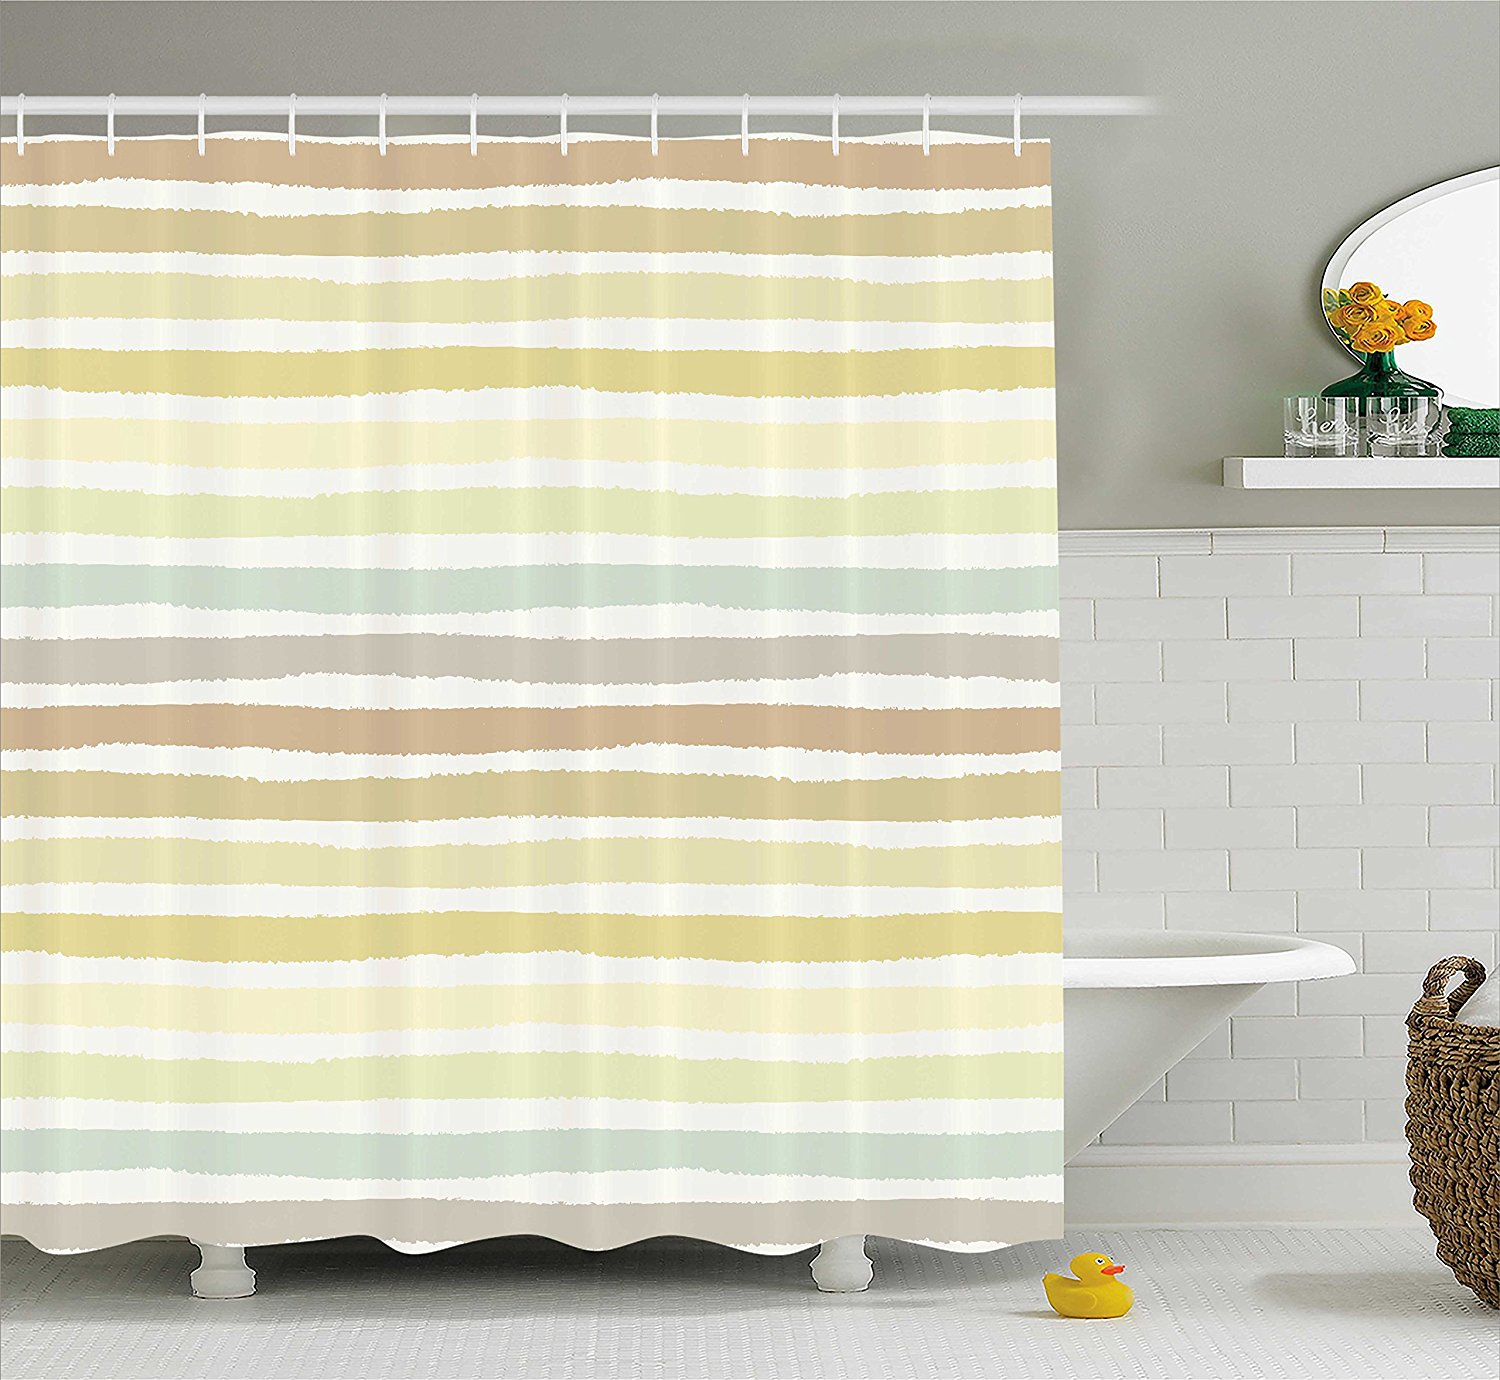 Modern Shower Curtain By Coral Reed With Pearl Shell On